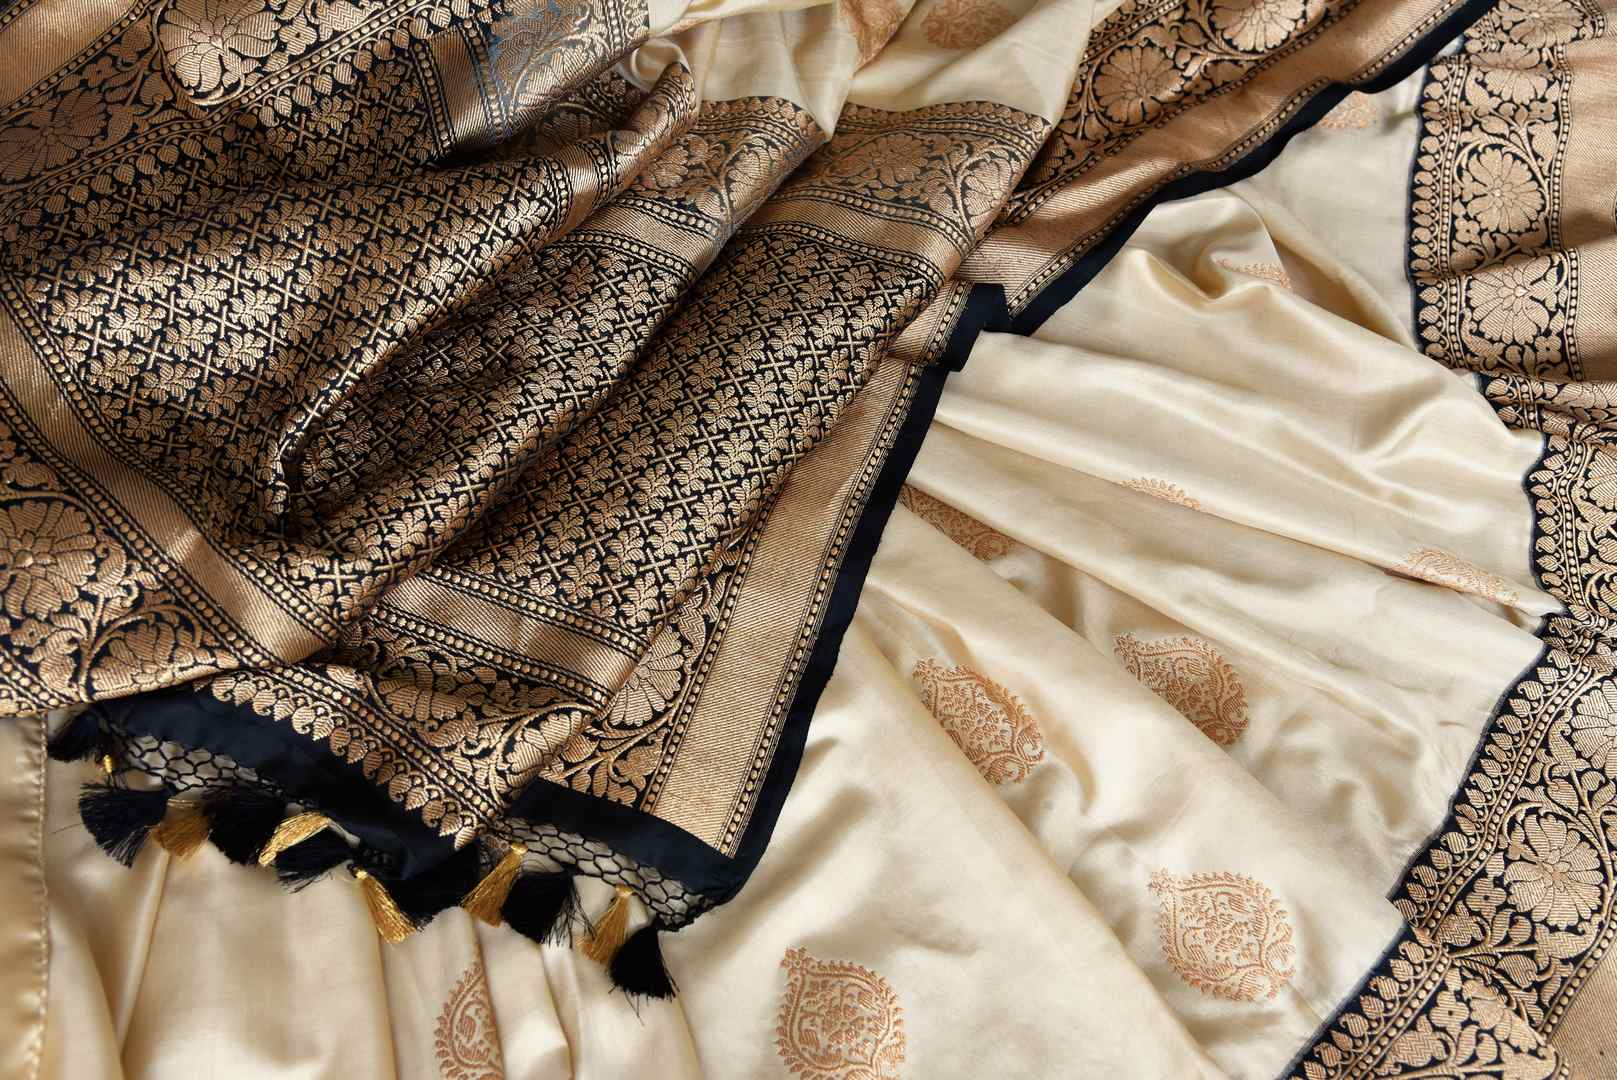 Shop beautifully handcrafted cream banarsi silk sari with buti work all over complemented with a heavy silk pallu and contrasting black blouse. This authentic silk saree is a must-have for every Indian woman. Shop designer silk sarees, handloom saris, Indian dresses online or visit Pure Elegance store in USA. -details